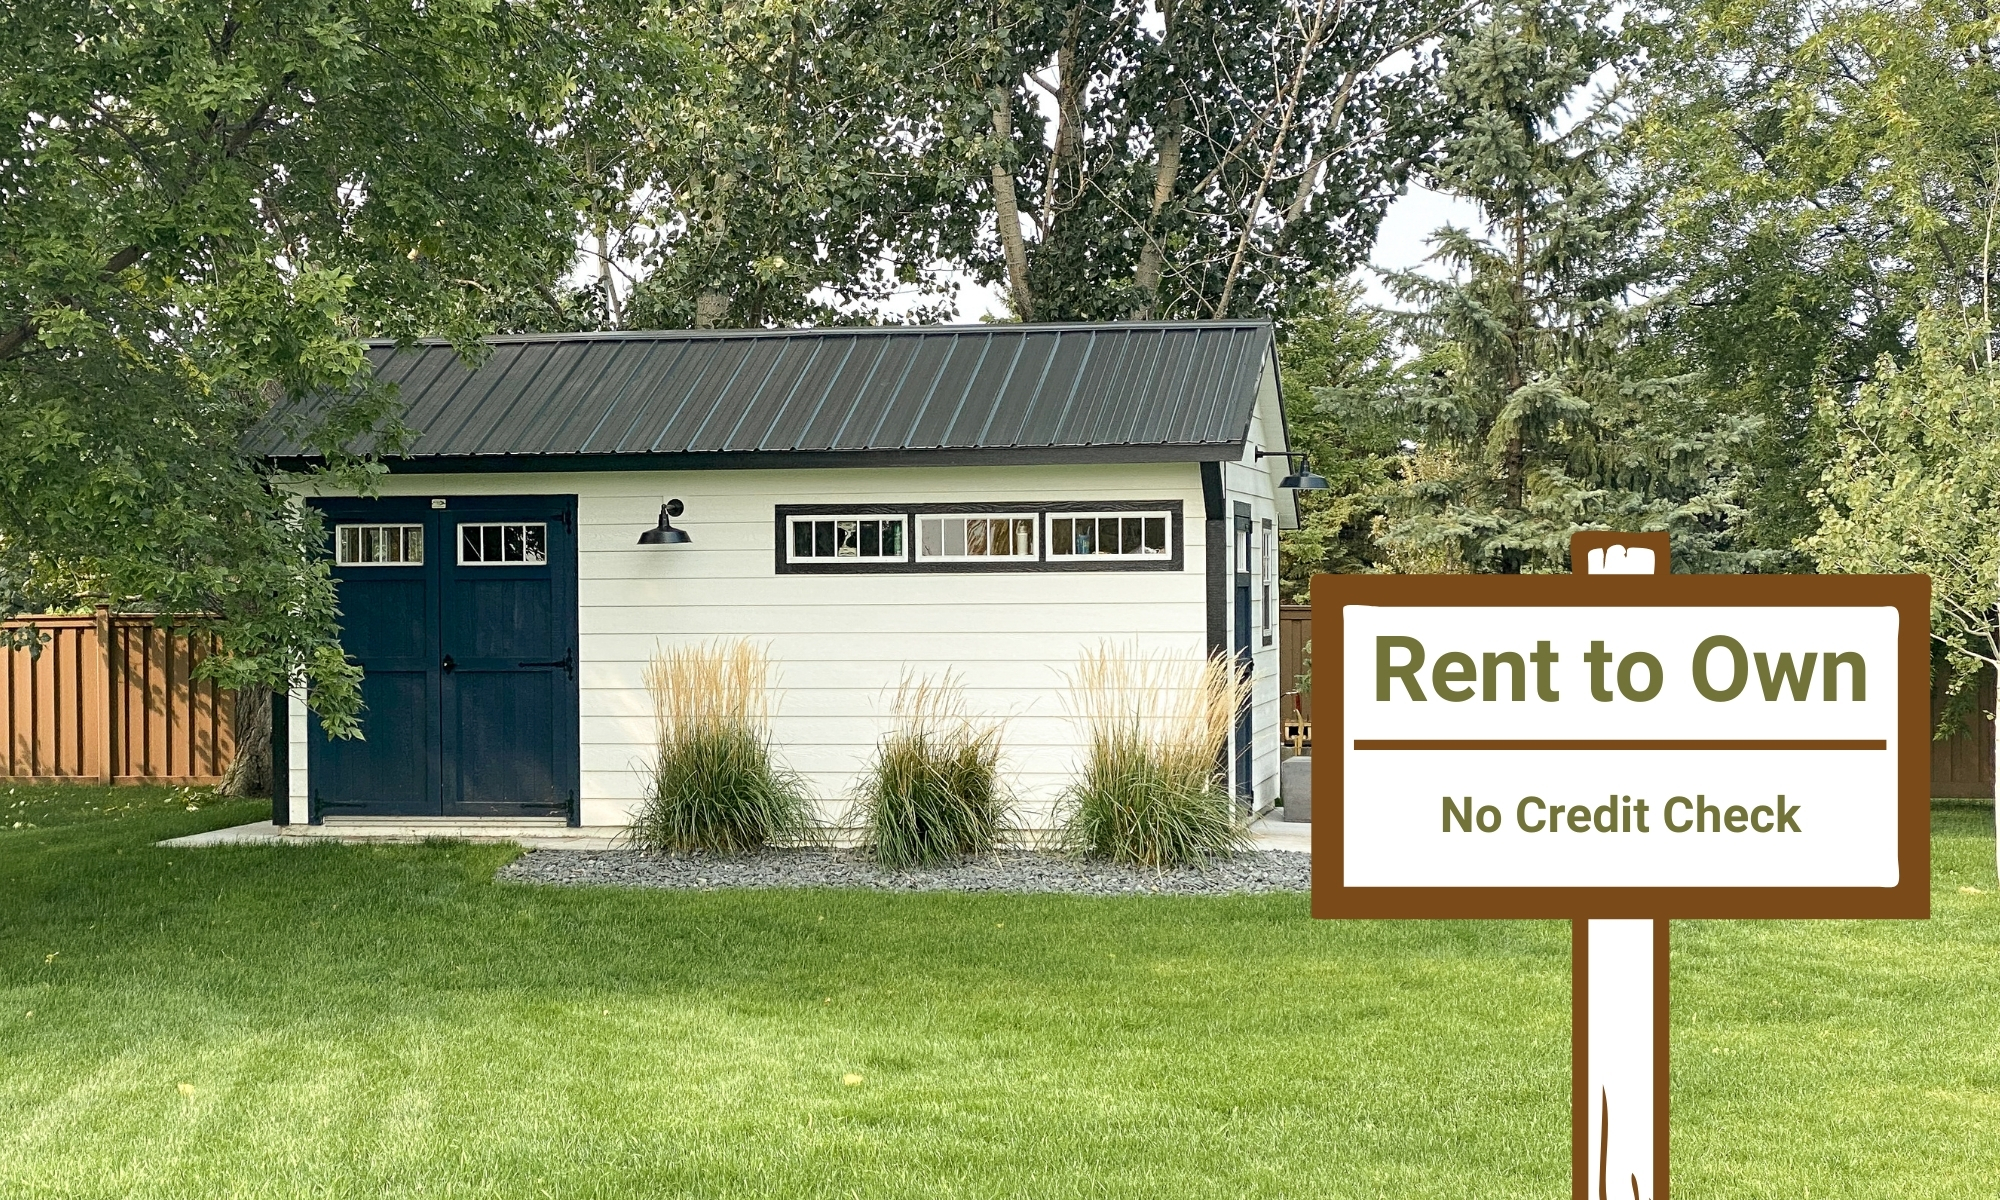 rent to own sheds in north dakota